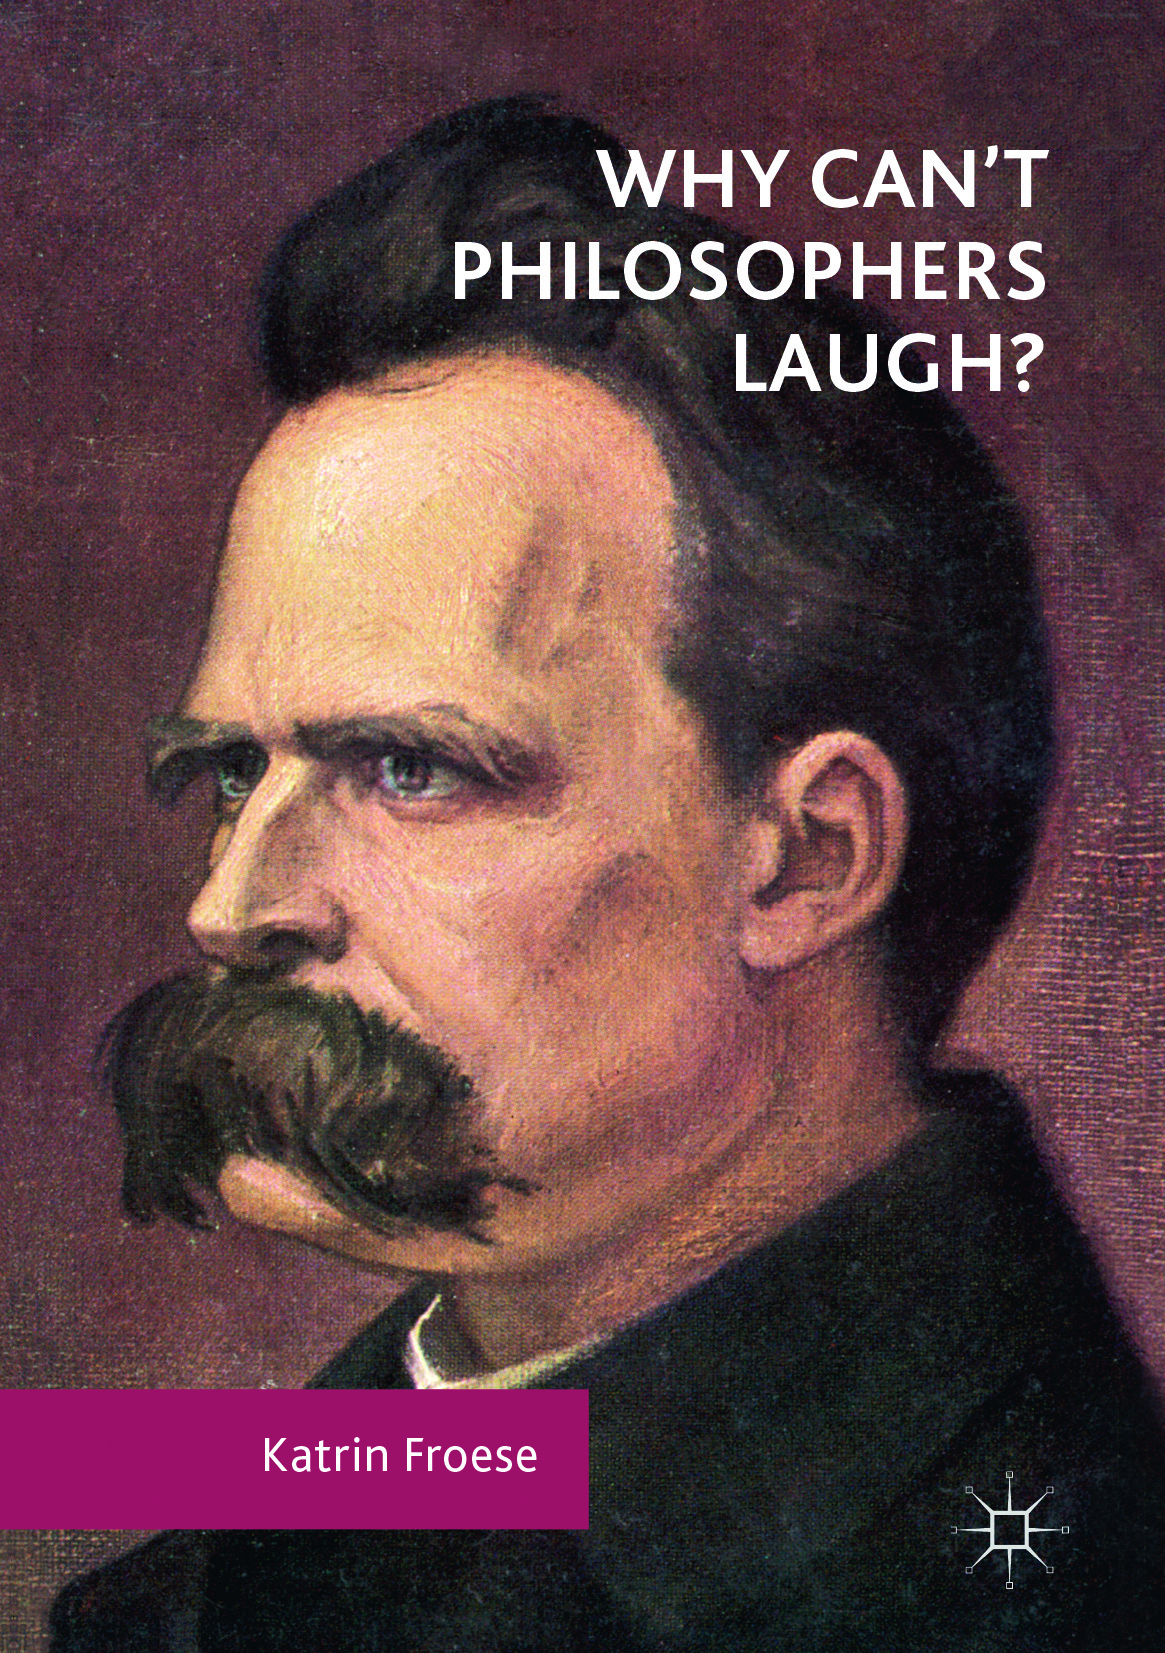 Froese, Katrin - Why Can't Philosophers Laugh?, ebook